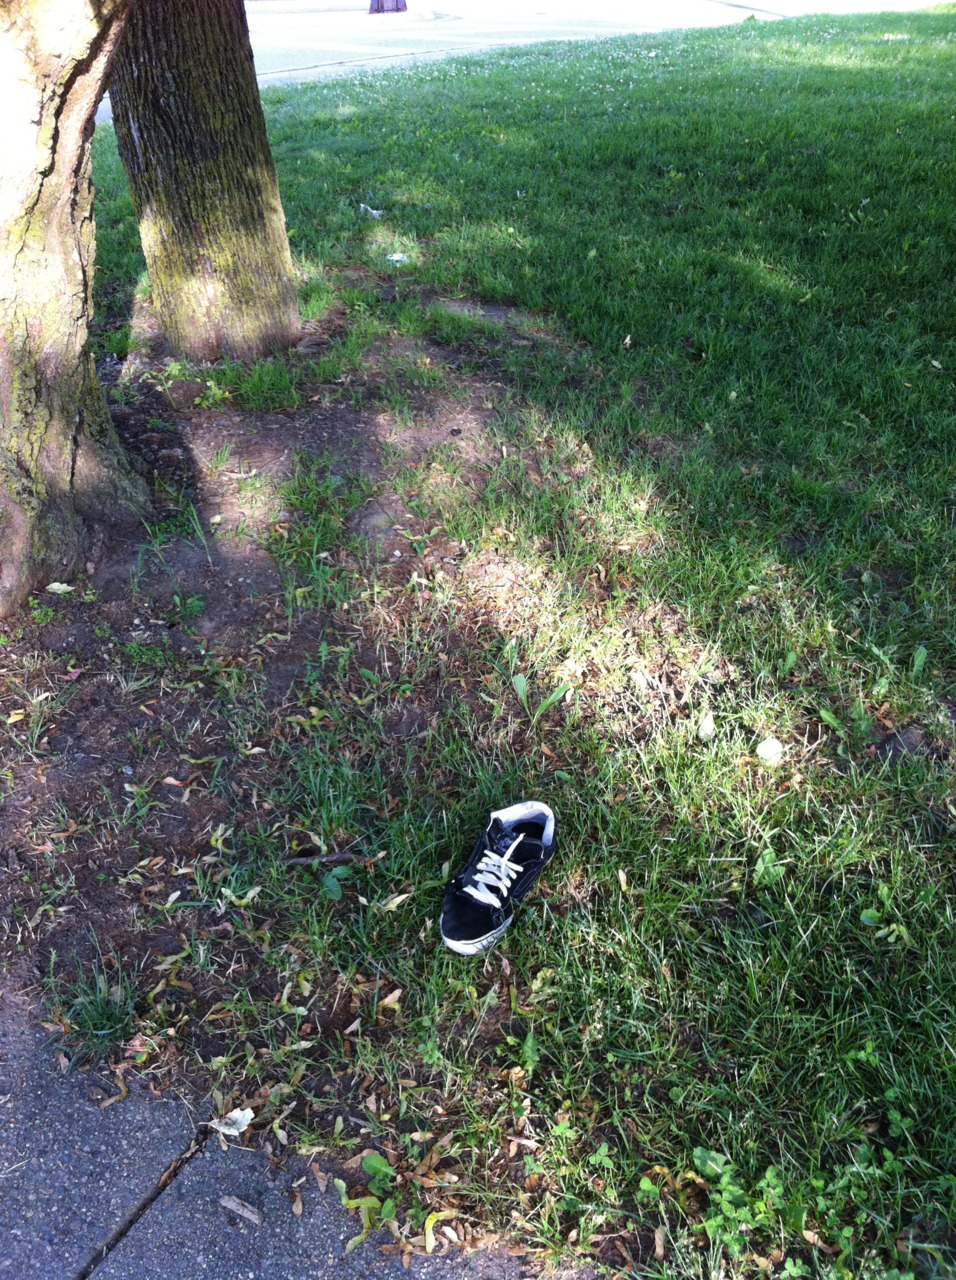 How do you lose just one shoe?